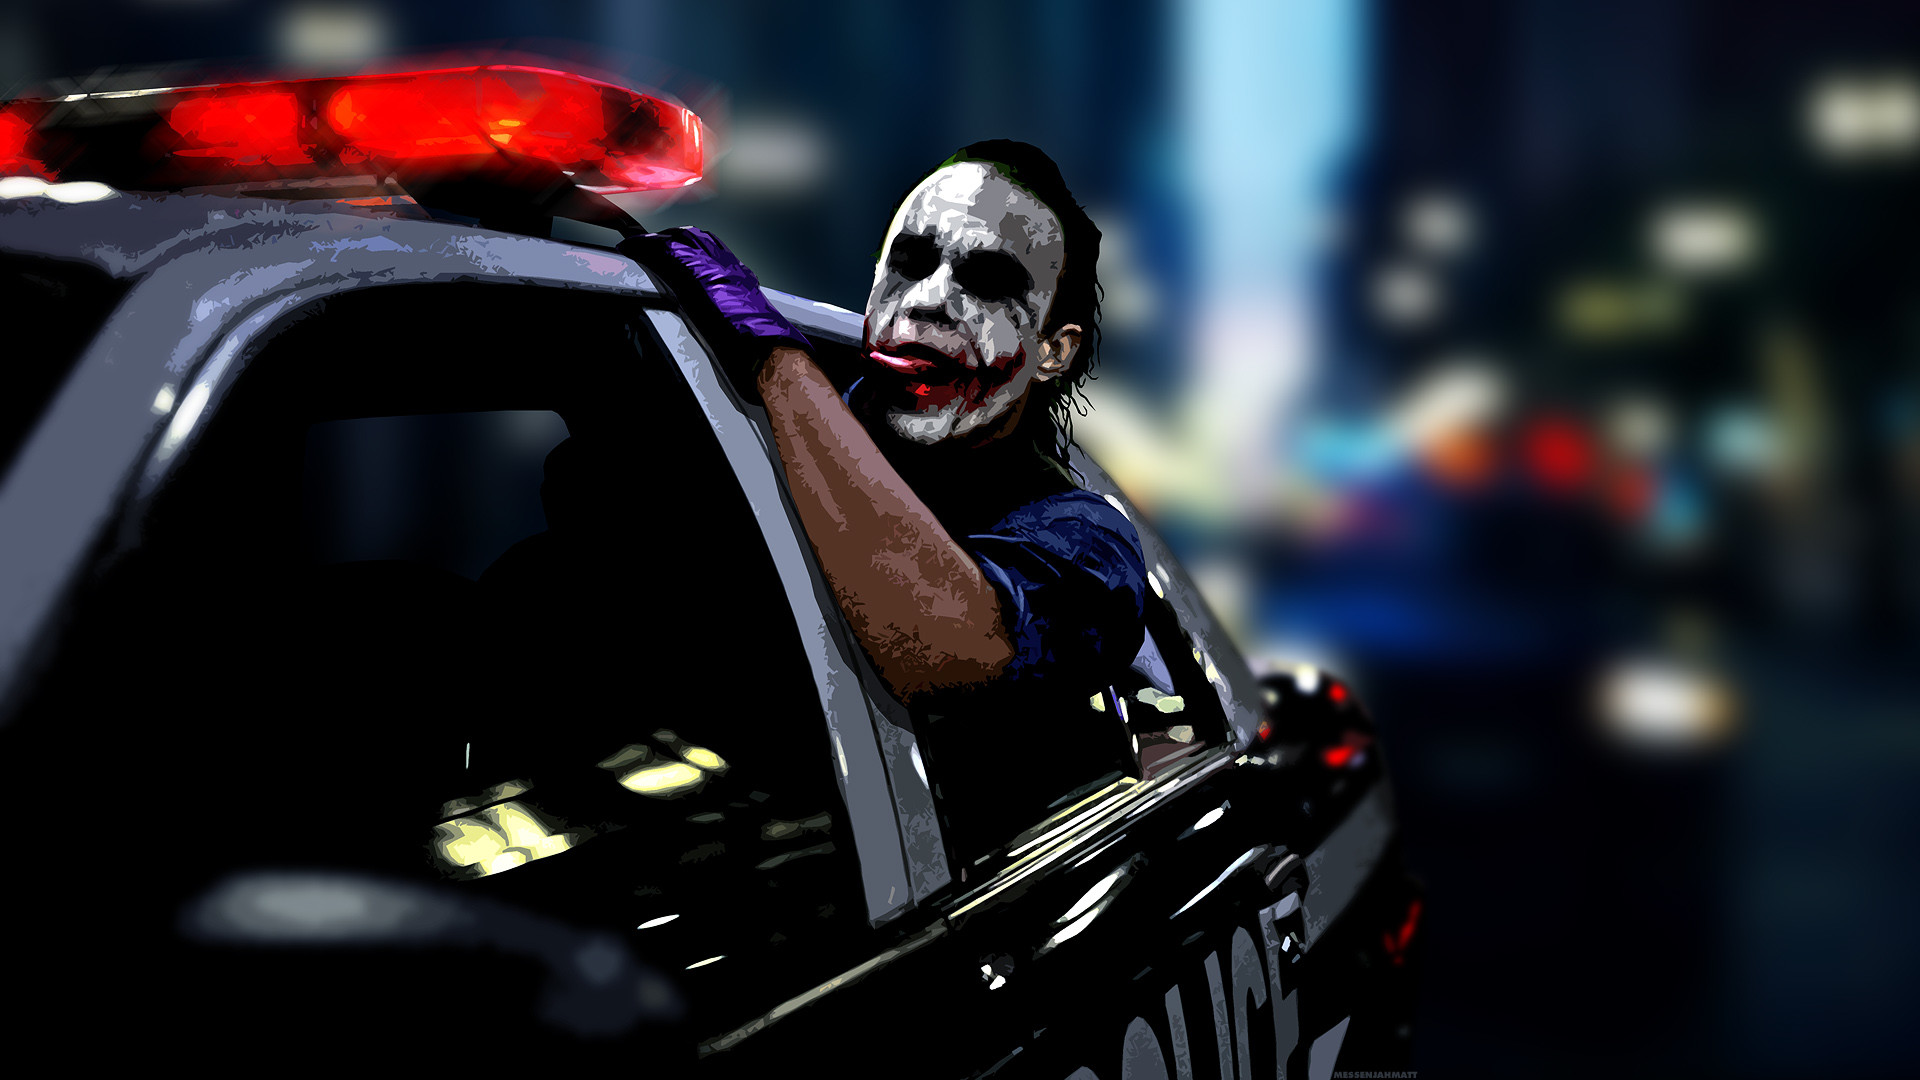 1920x1080 The Joker Wallpaper  The, Joker, Heath, Ledger, Police, Cars .